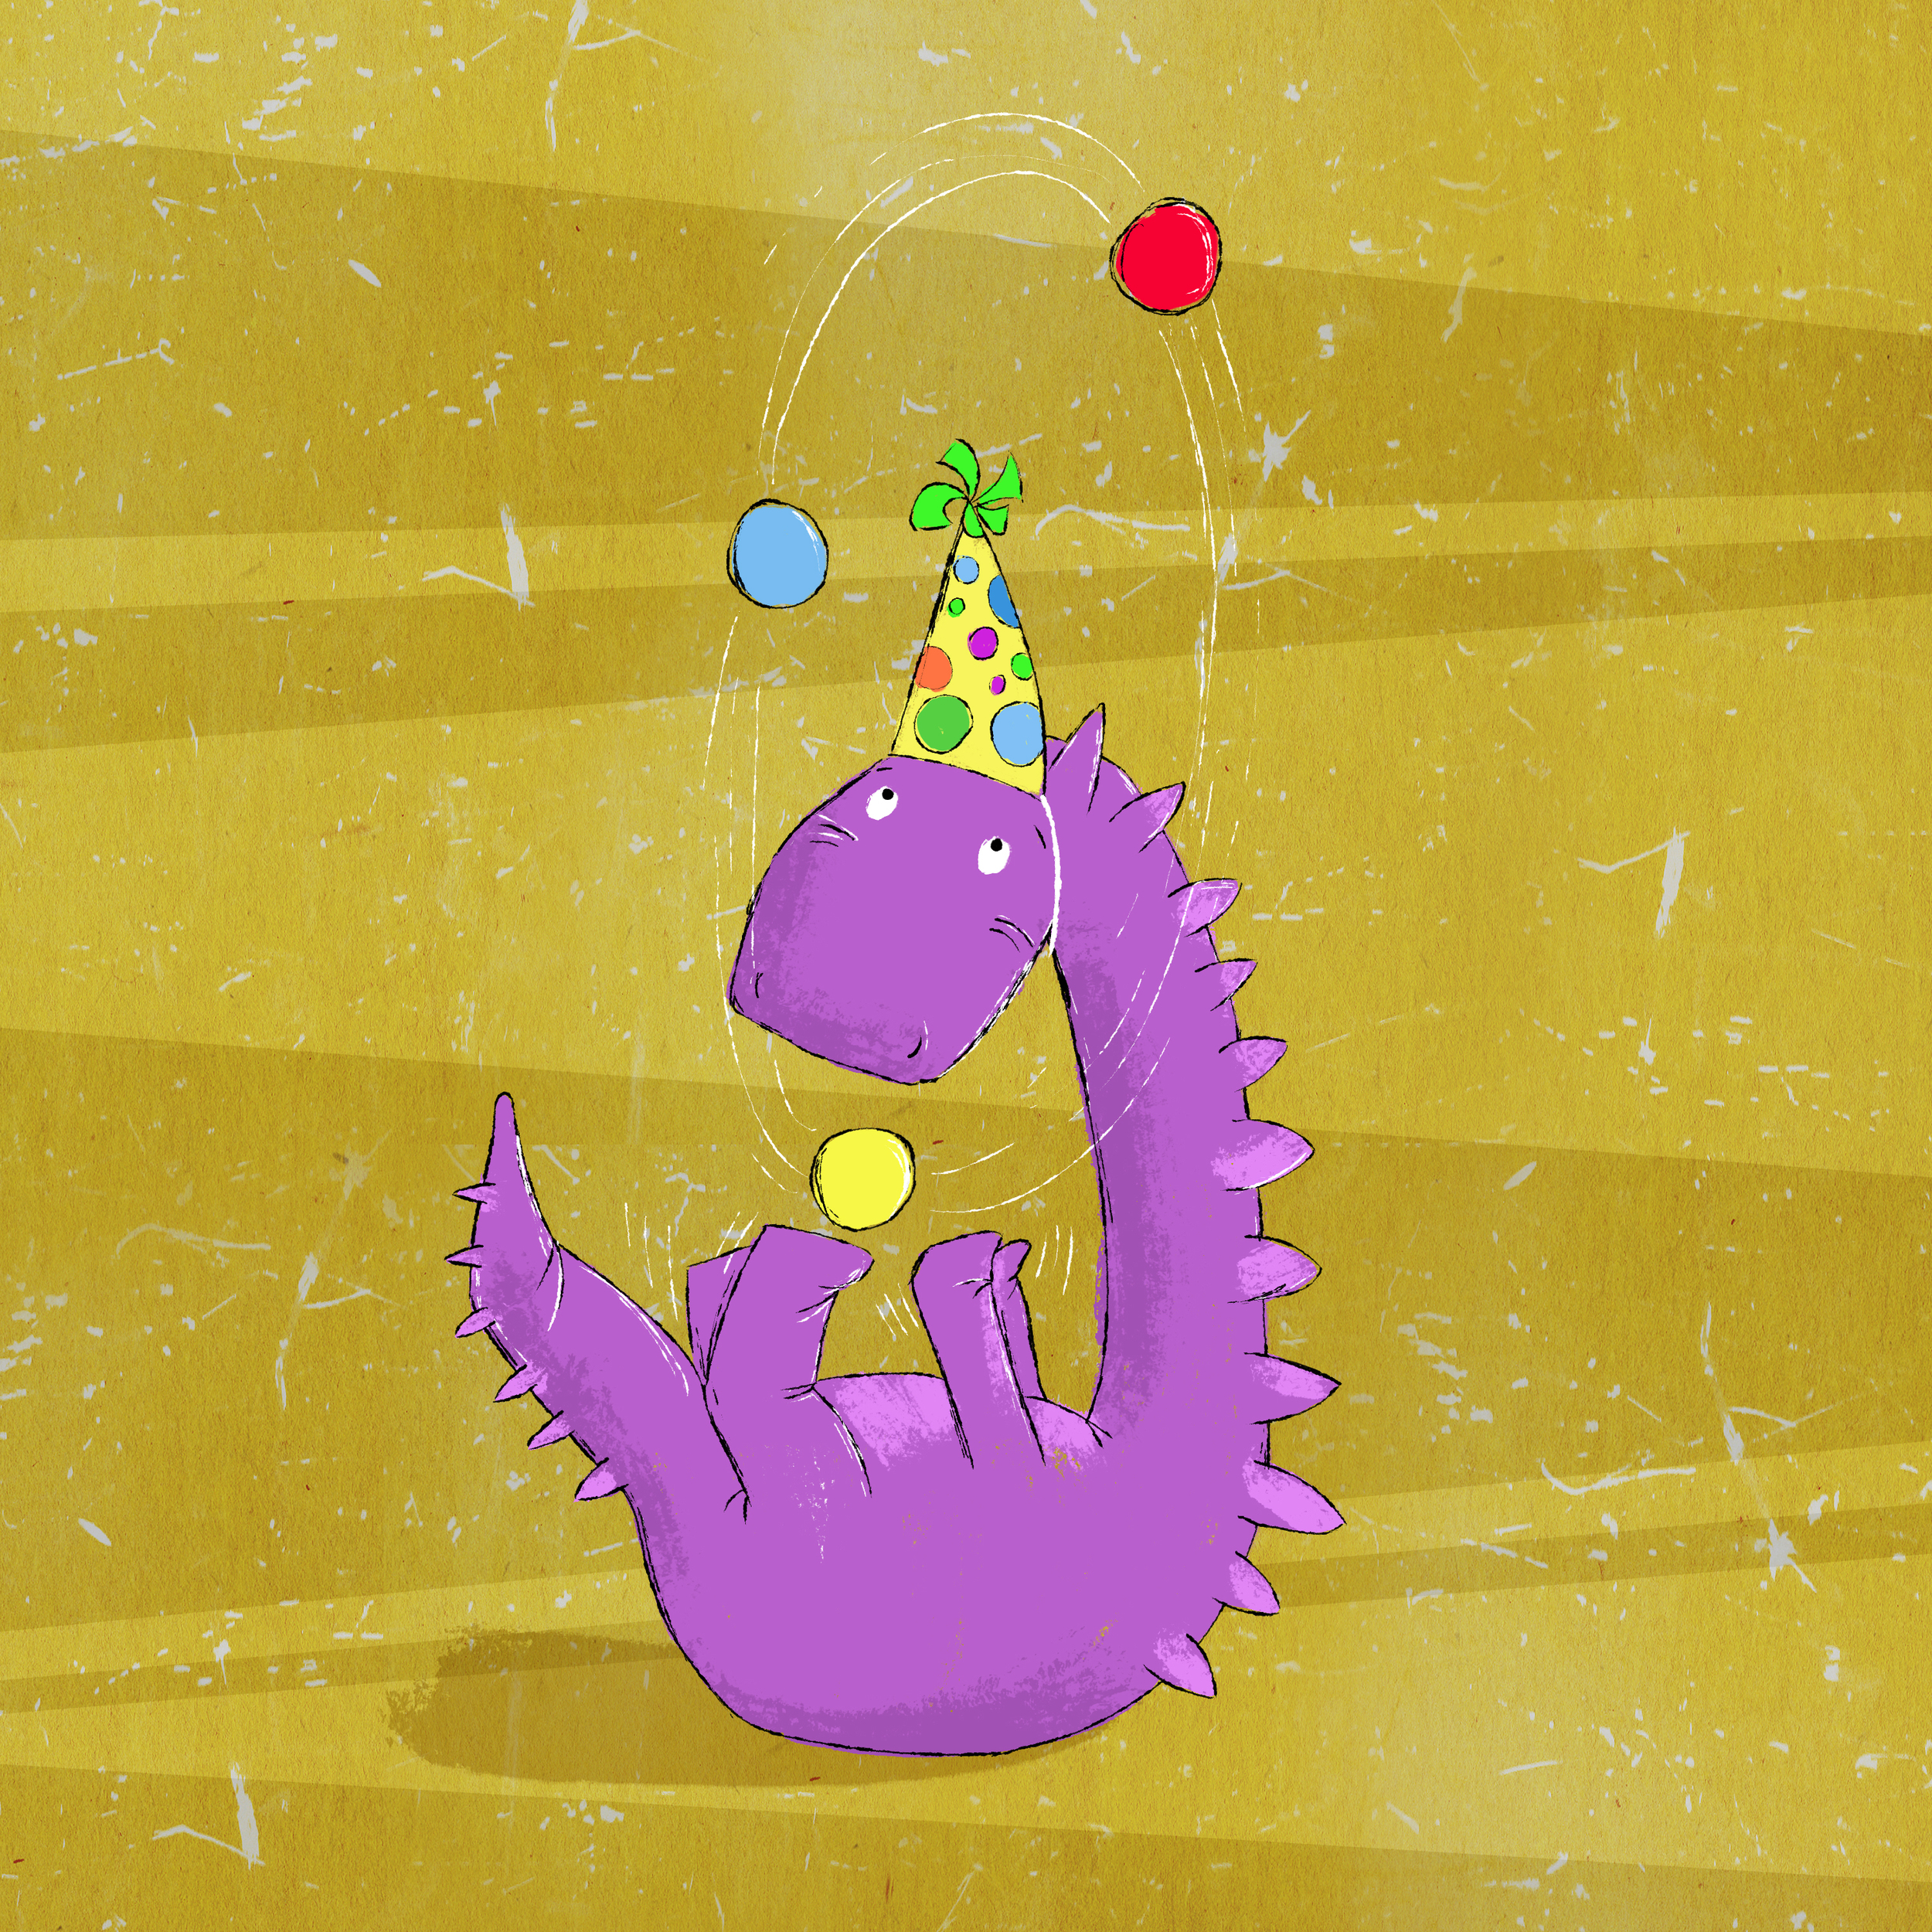 There's just nothing like a juggling dinoasur...even though he's a bit of a showoff.